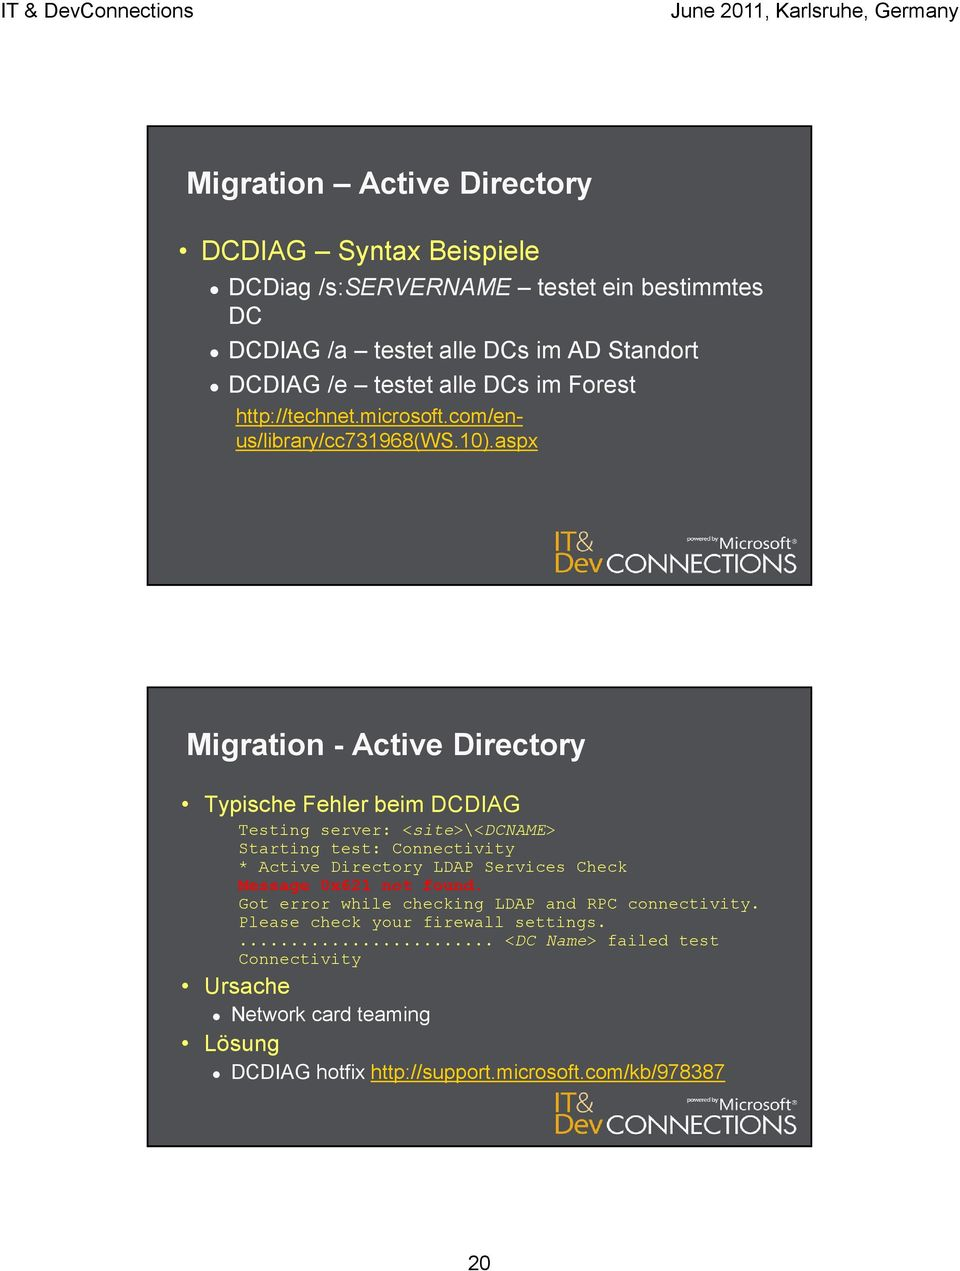 aspx Migration - Active Directory Typische Fehler beim DCDIAG Testing server: <site>\<dcname> Starting test: Connectivity * Active Directory LDAP Services